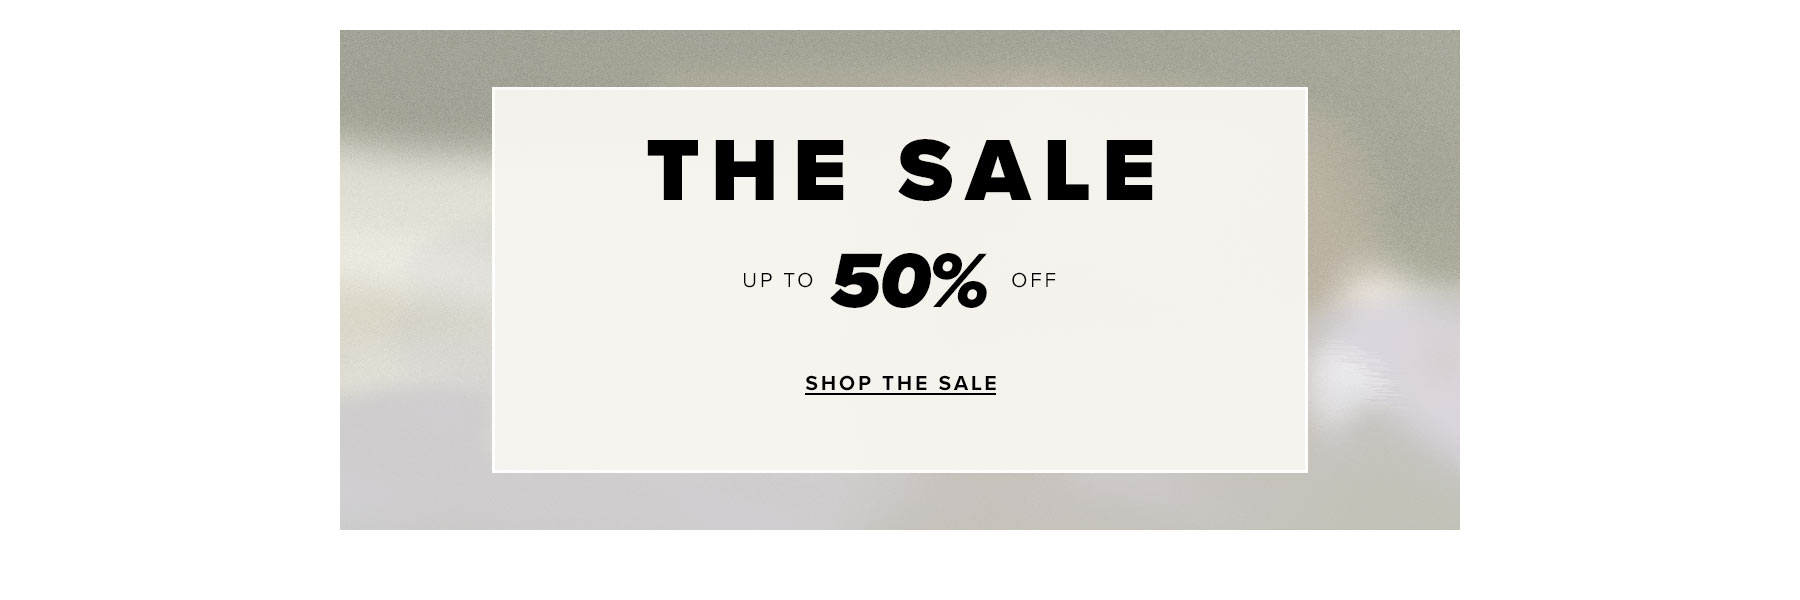 The sale. Up to 50% off. Shop now.